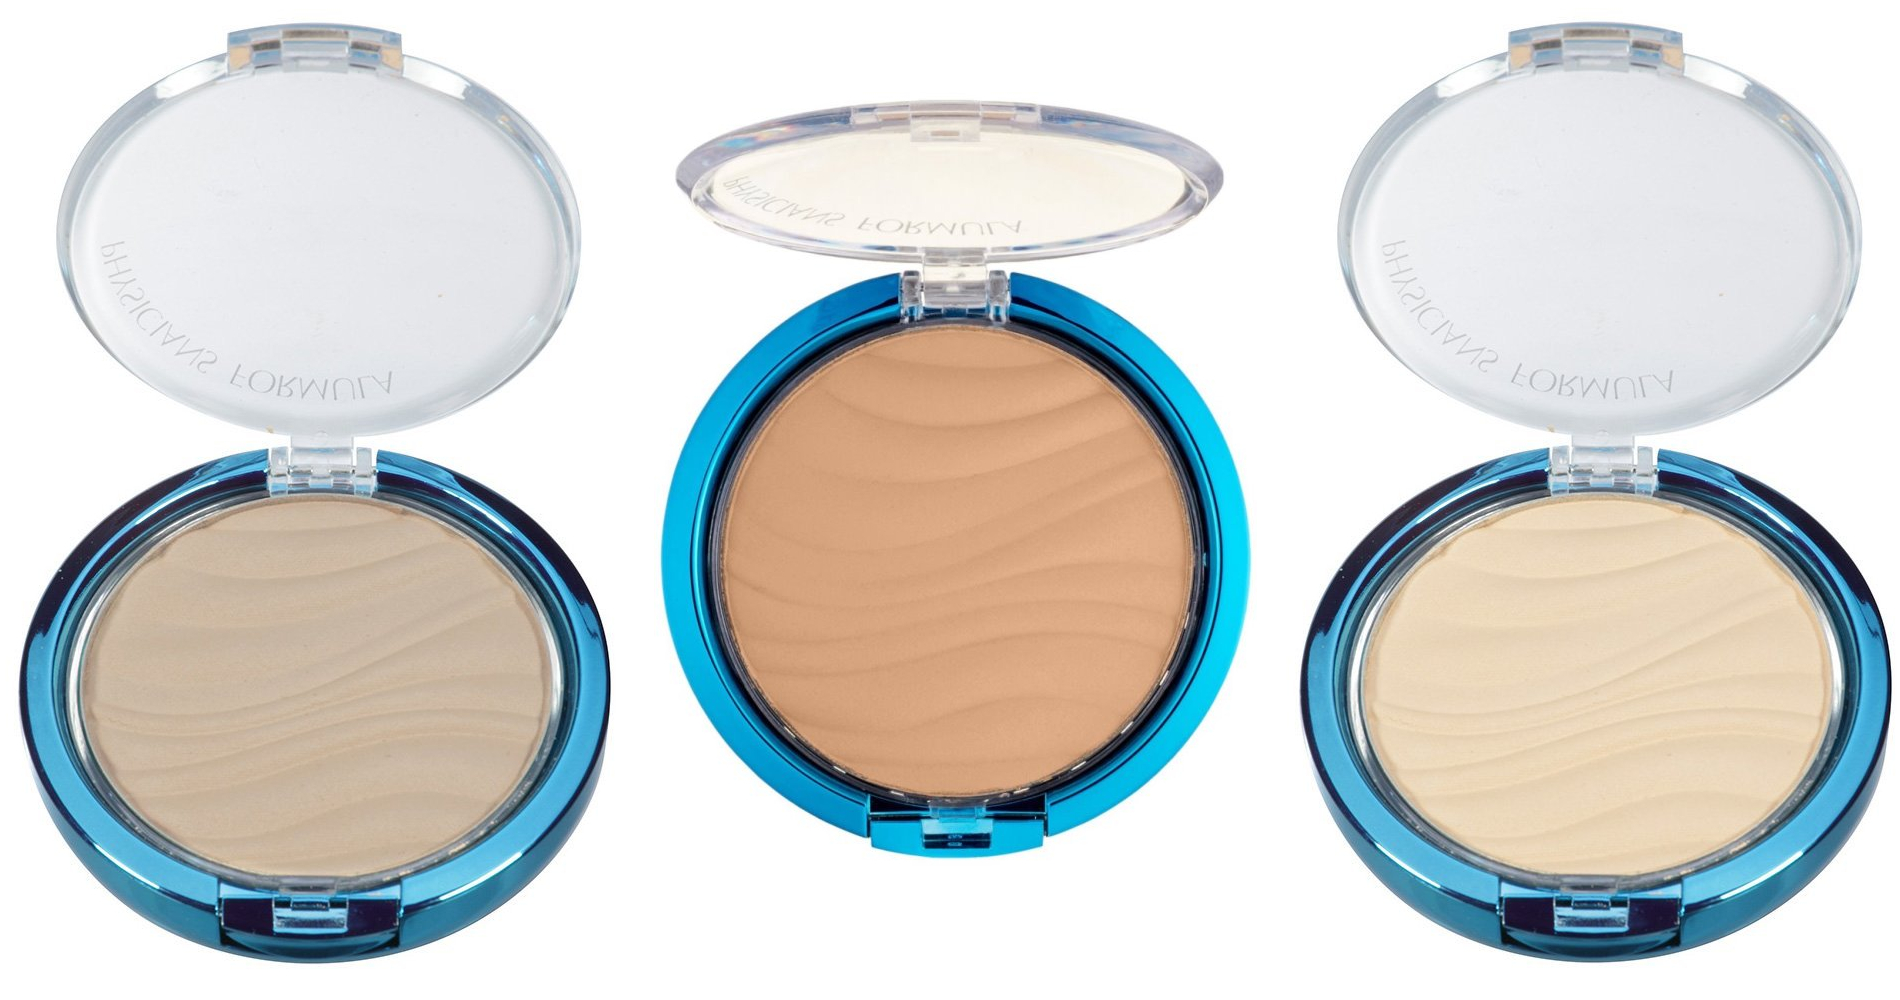 Best pressed mineral powder foundations dermotopia physicians formula mineral weartalc free mineral airbrushing pressed powder spf 30 nvjuhfo Images